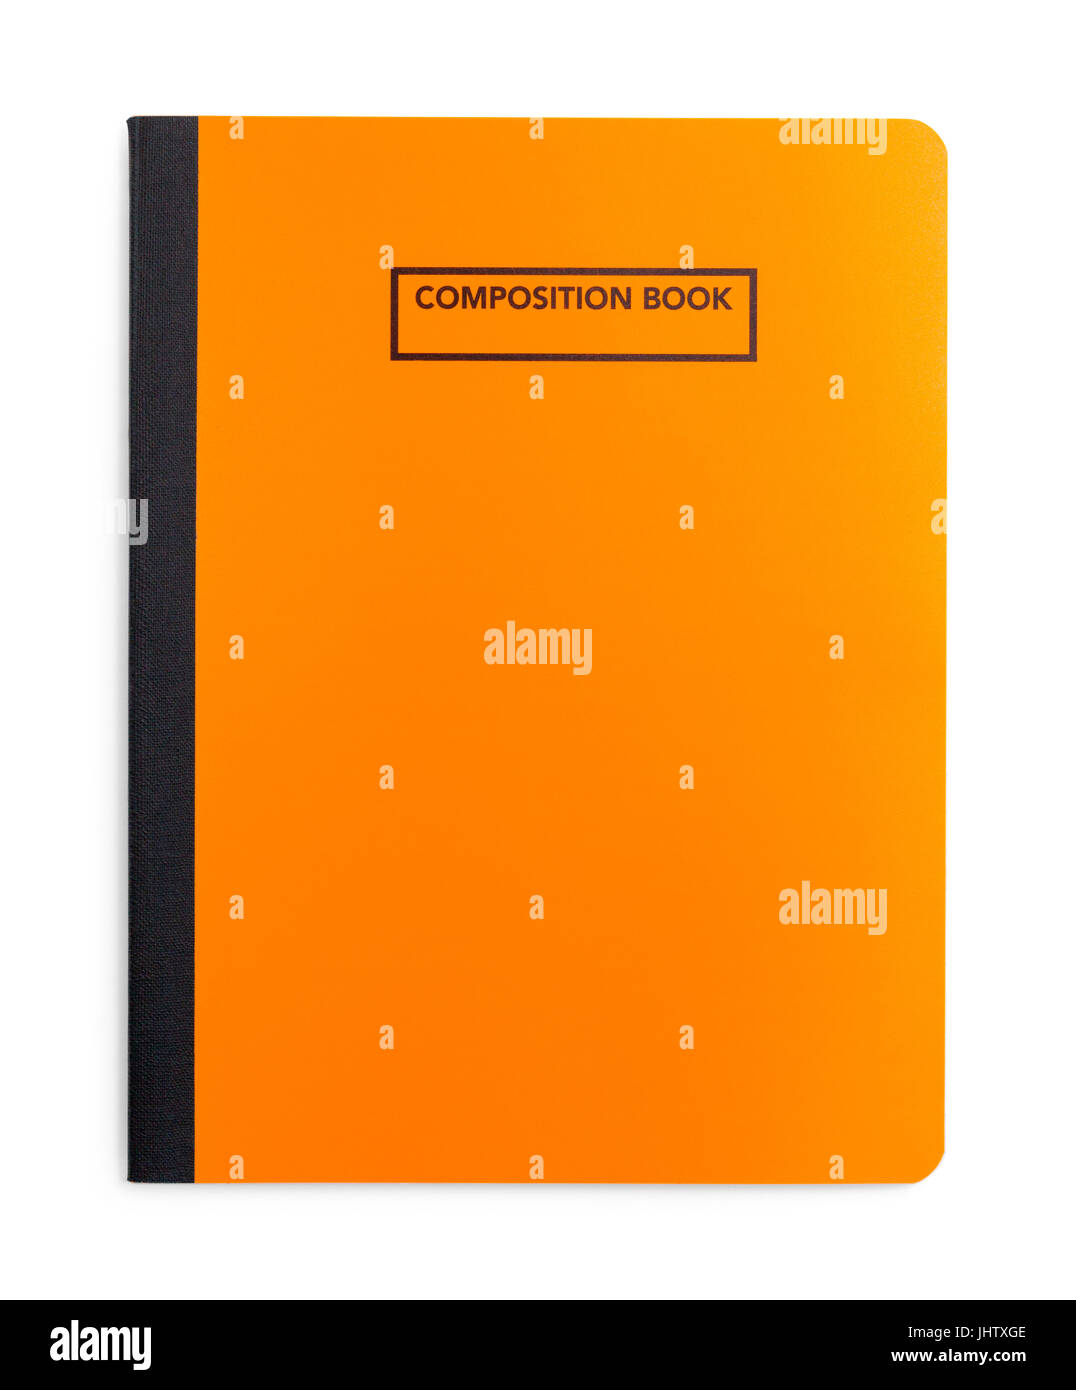 Composition Orange Book isolé sur fond blanc. Photo Stock